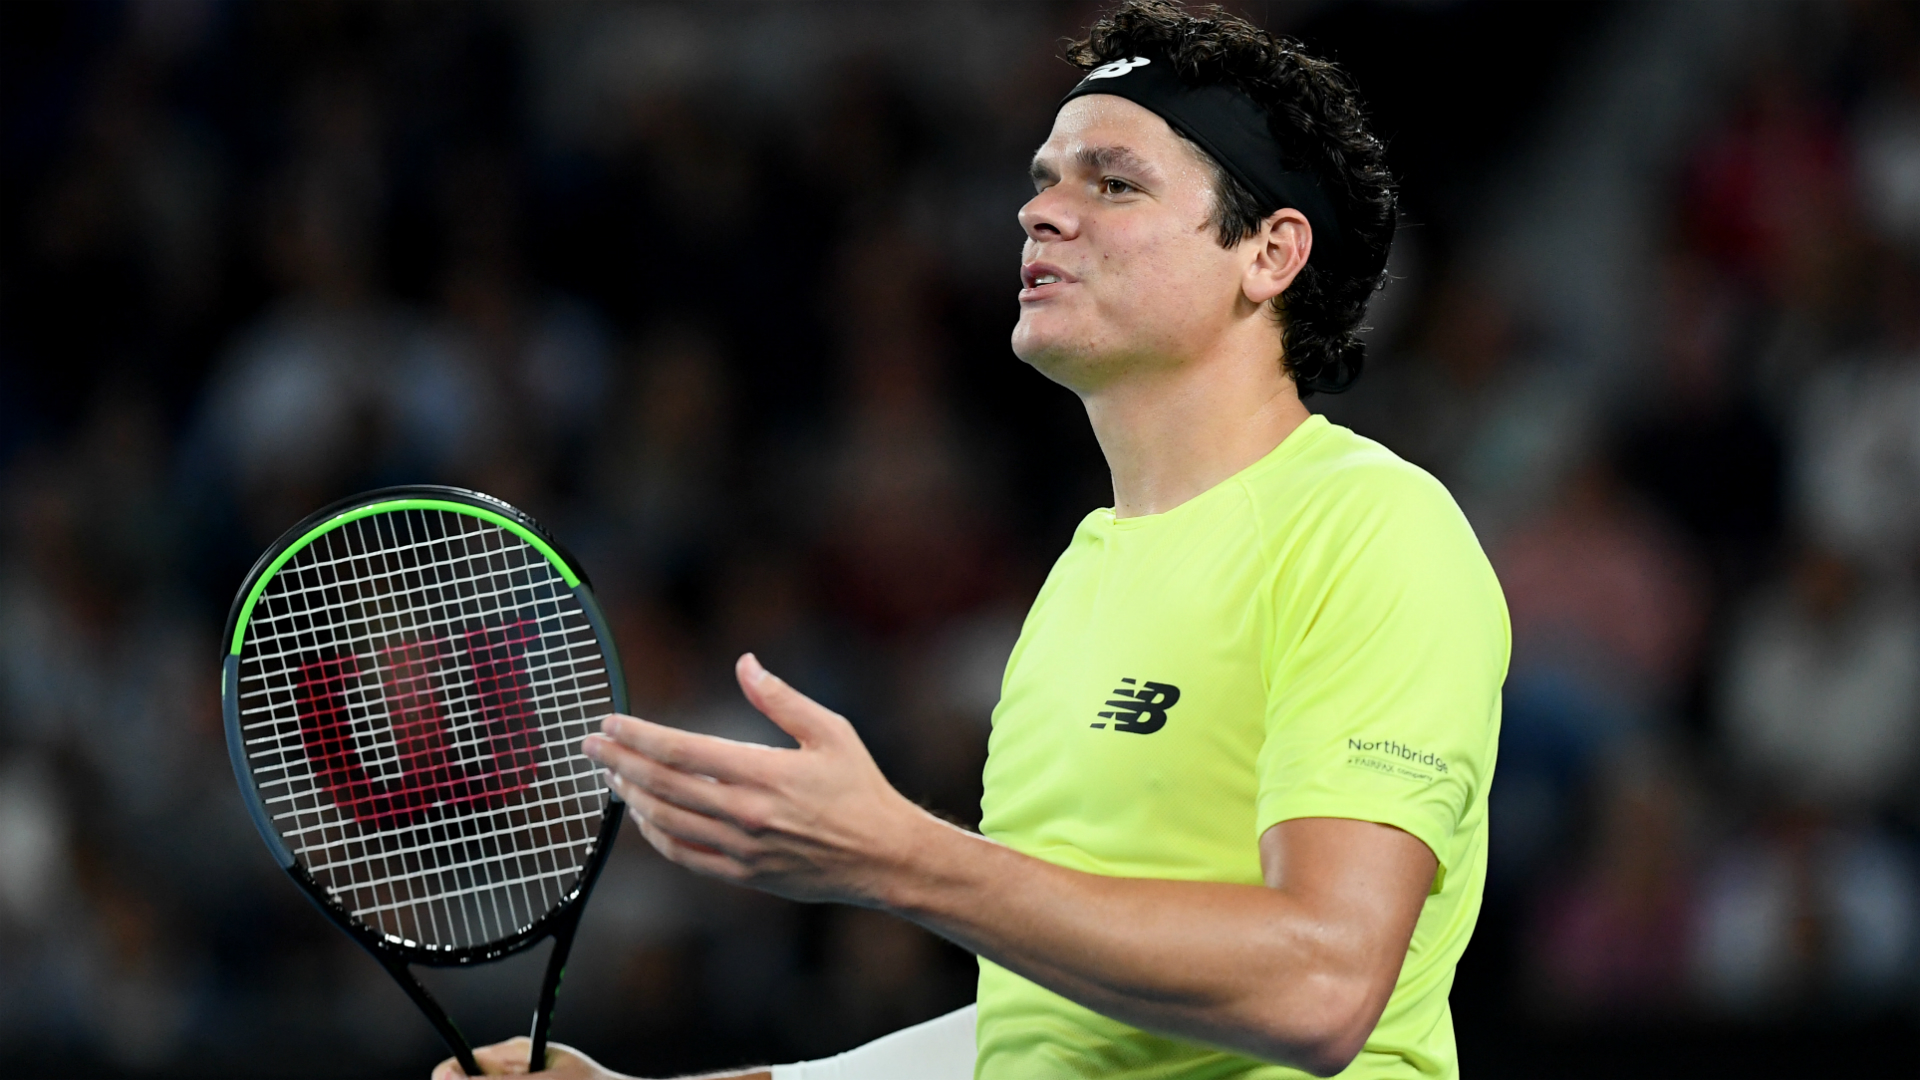 Kwon stuns Raonic en route to New York QFs, Coric crashes out in Buenos Aires